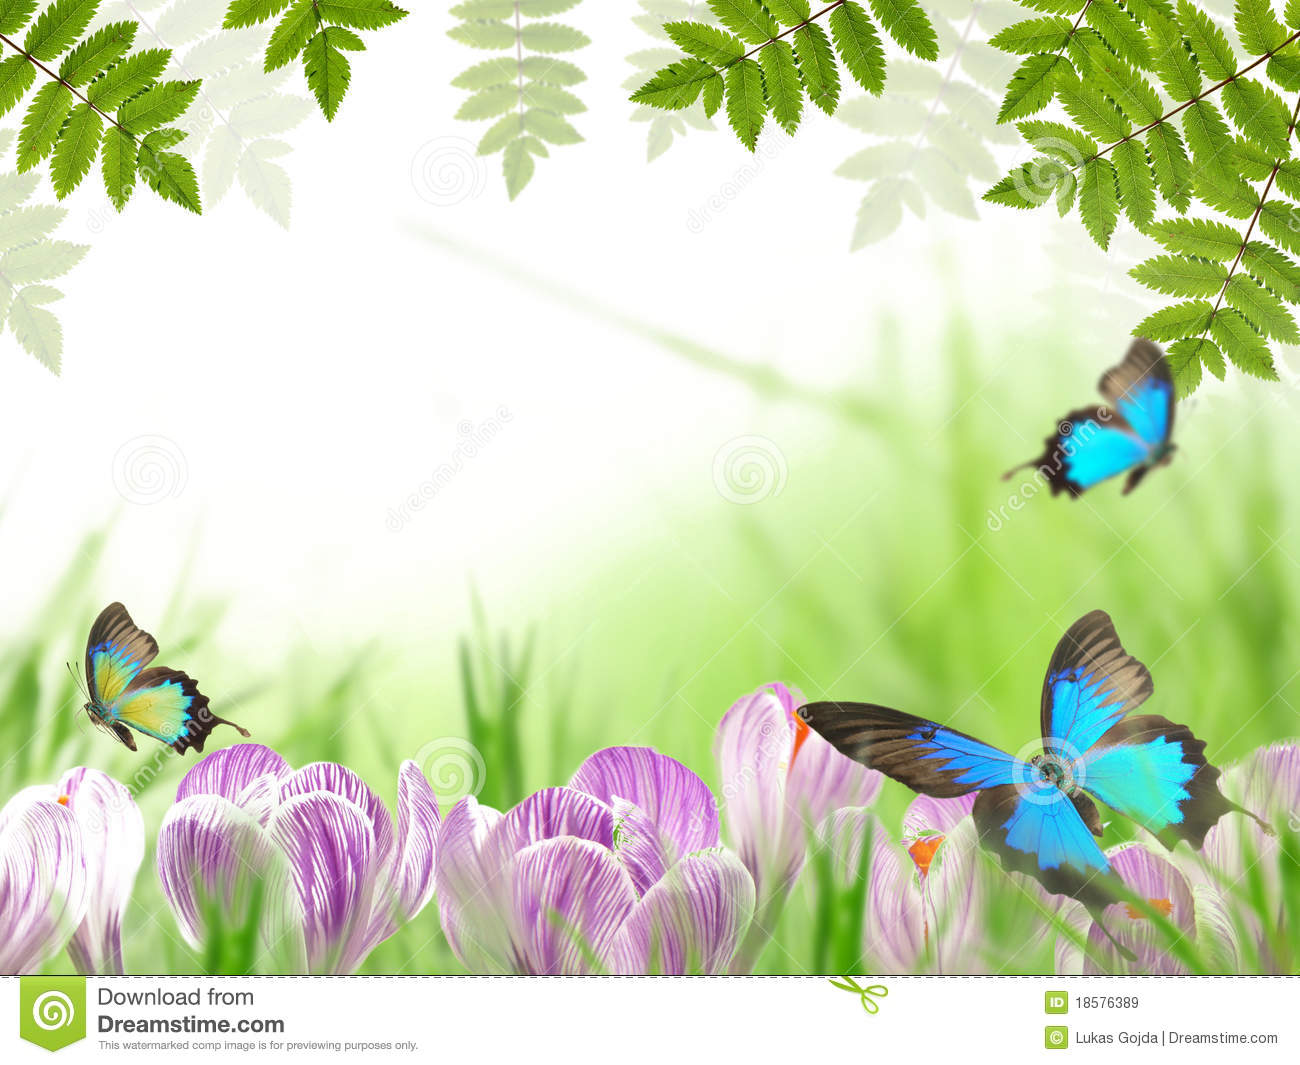 Nature Images 2mb: Spring Theme Stock Image. Image Of Bloom, Fine, Copy